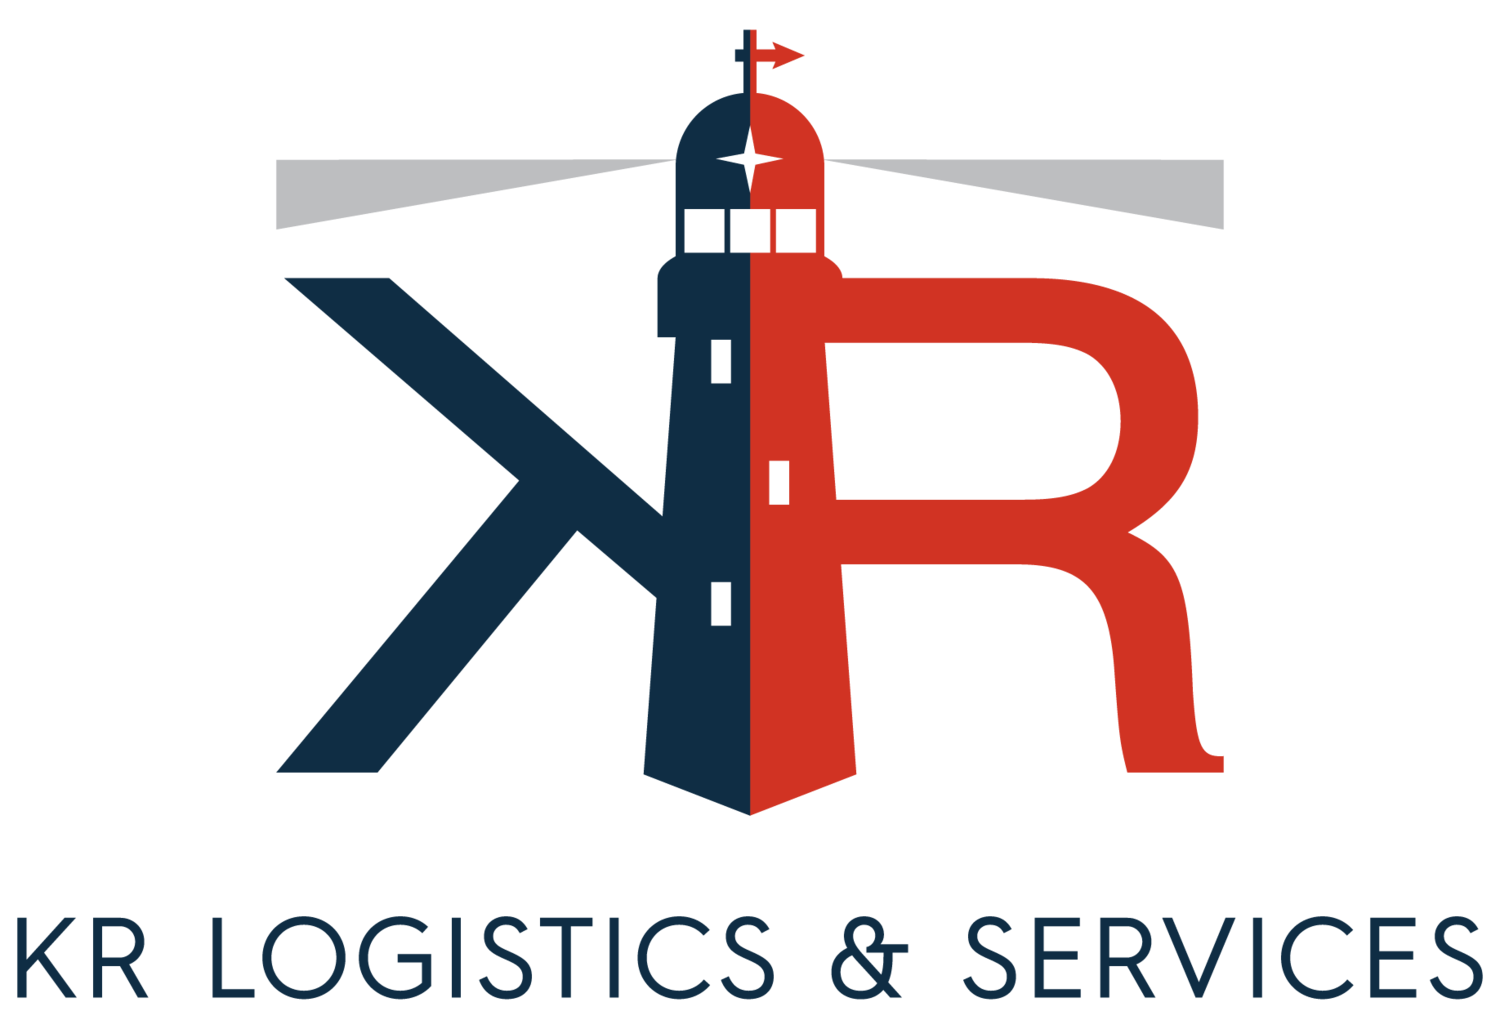 KR Logistics & Services